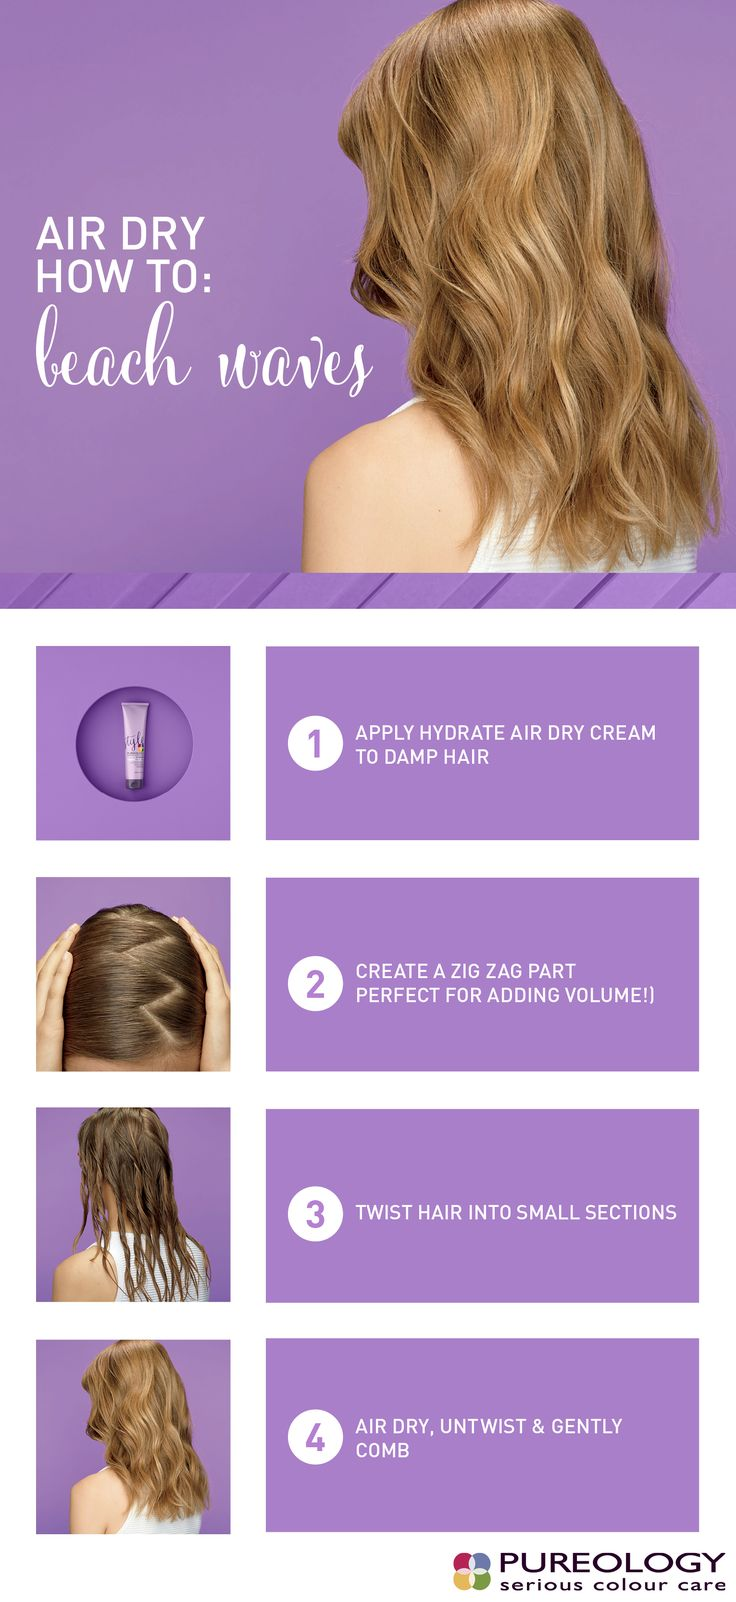 Check out this air dry how to and learn how to create effortless beach waves with our new Hydrate Air Dry Cream.  (PS - The zig zag part is the secret to creating volume!)